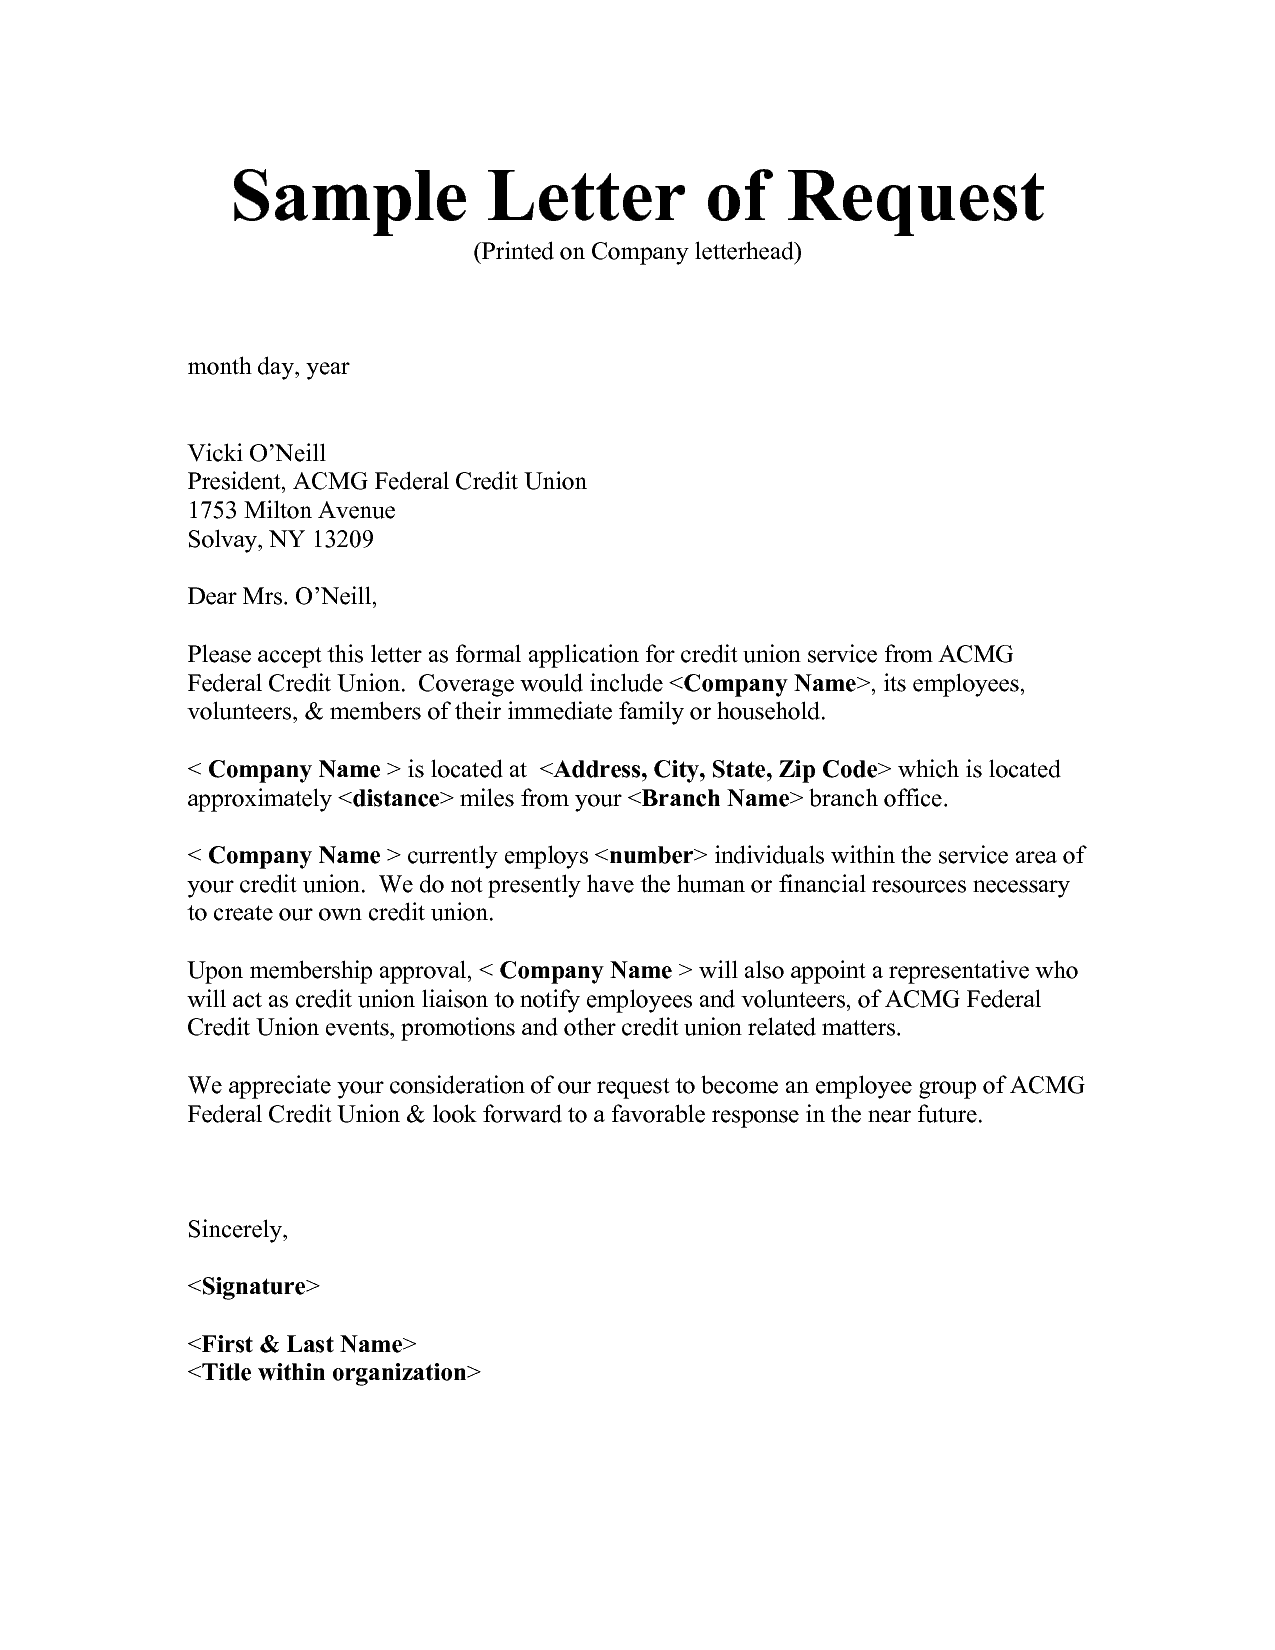 Business letter requesting information sample letters format request business letter requesting information sample letters format request spiritdancerdesigns Choice Image